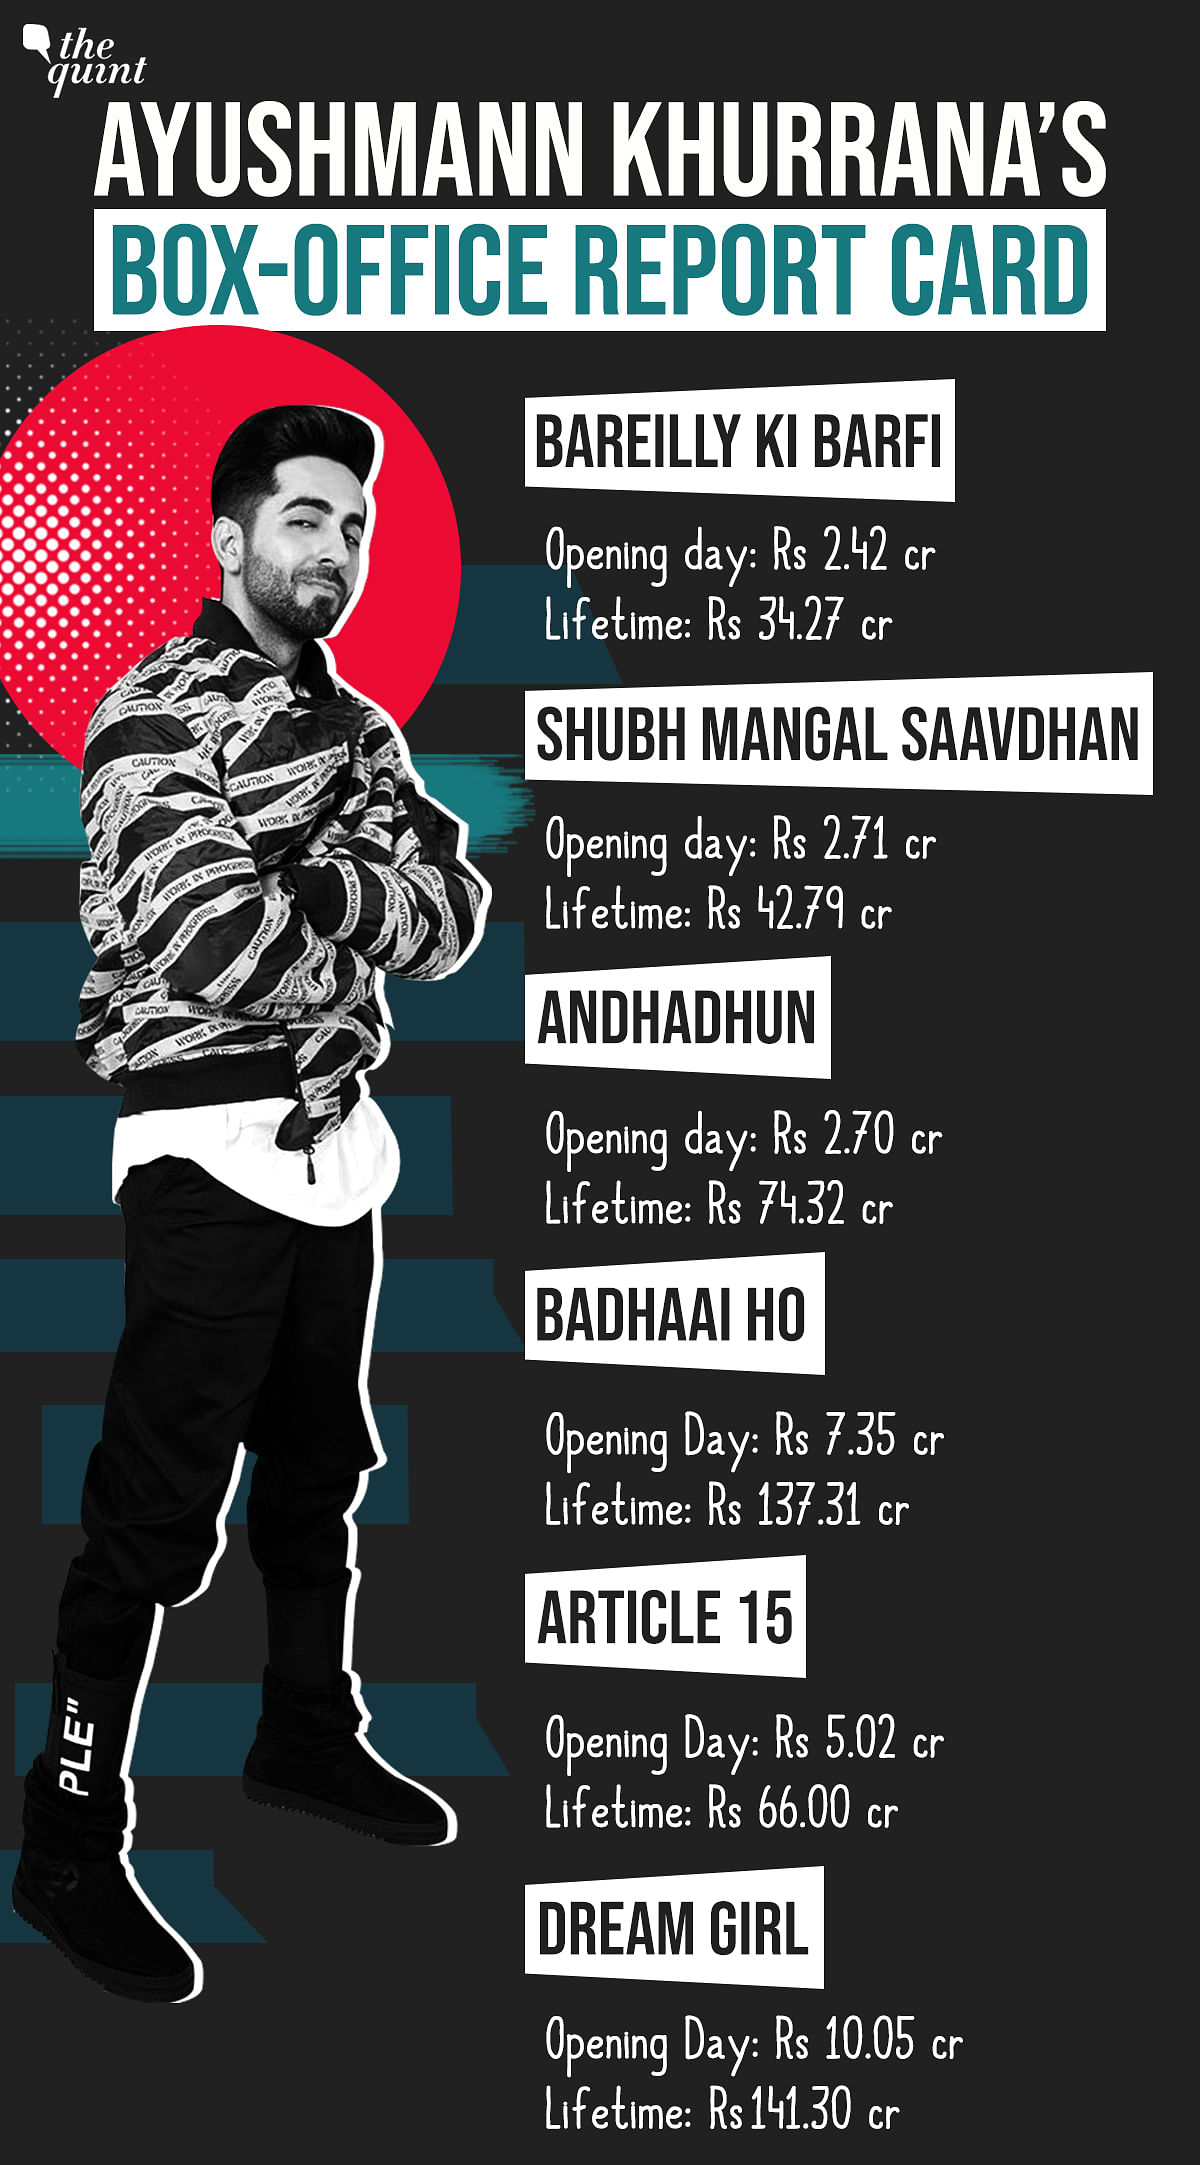 Ayushmann Khurrana's last six films have scored big at the box office.